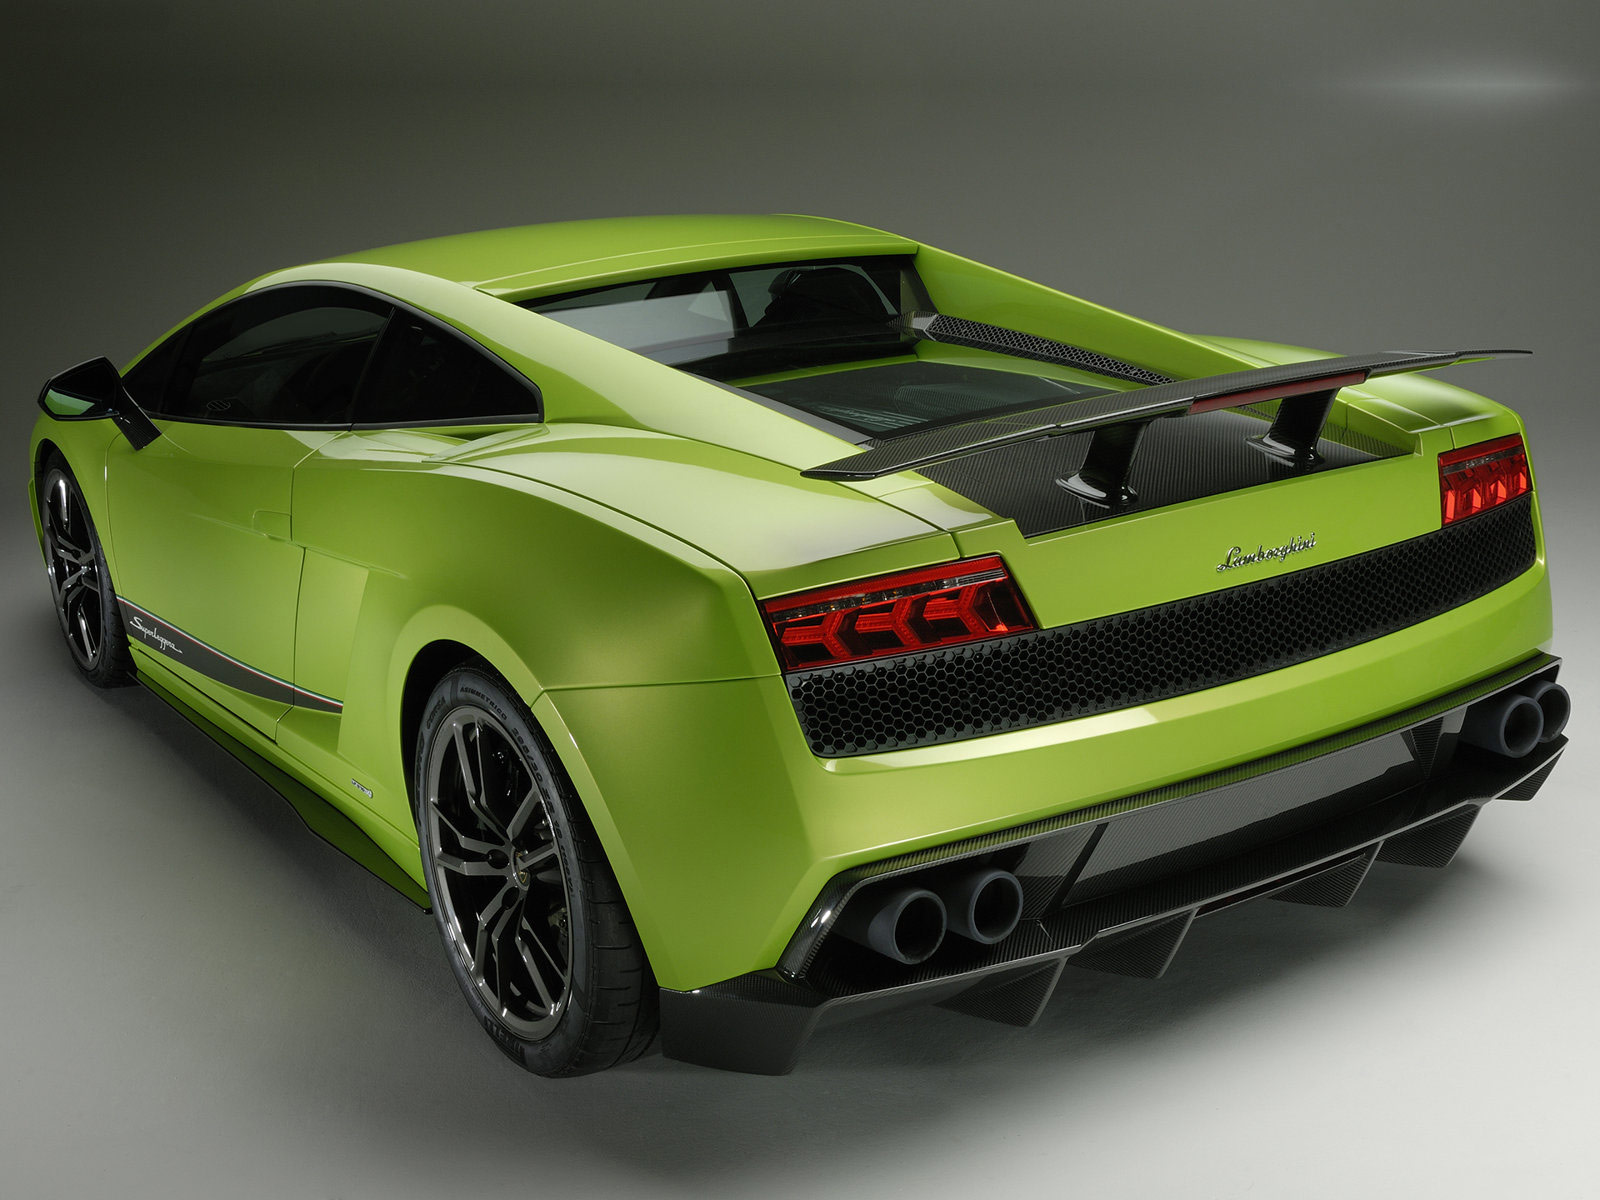 2011 lamborghini gallardo lp570 4 superleggera pictures. Black Bedroom Furniture Sets. Home Design Ideas